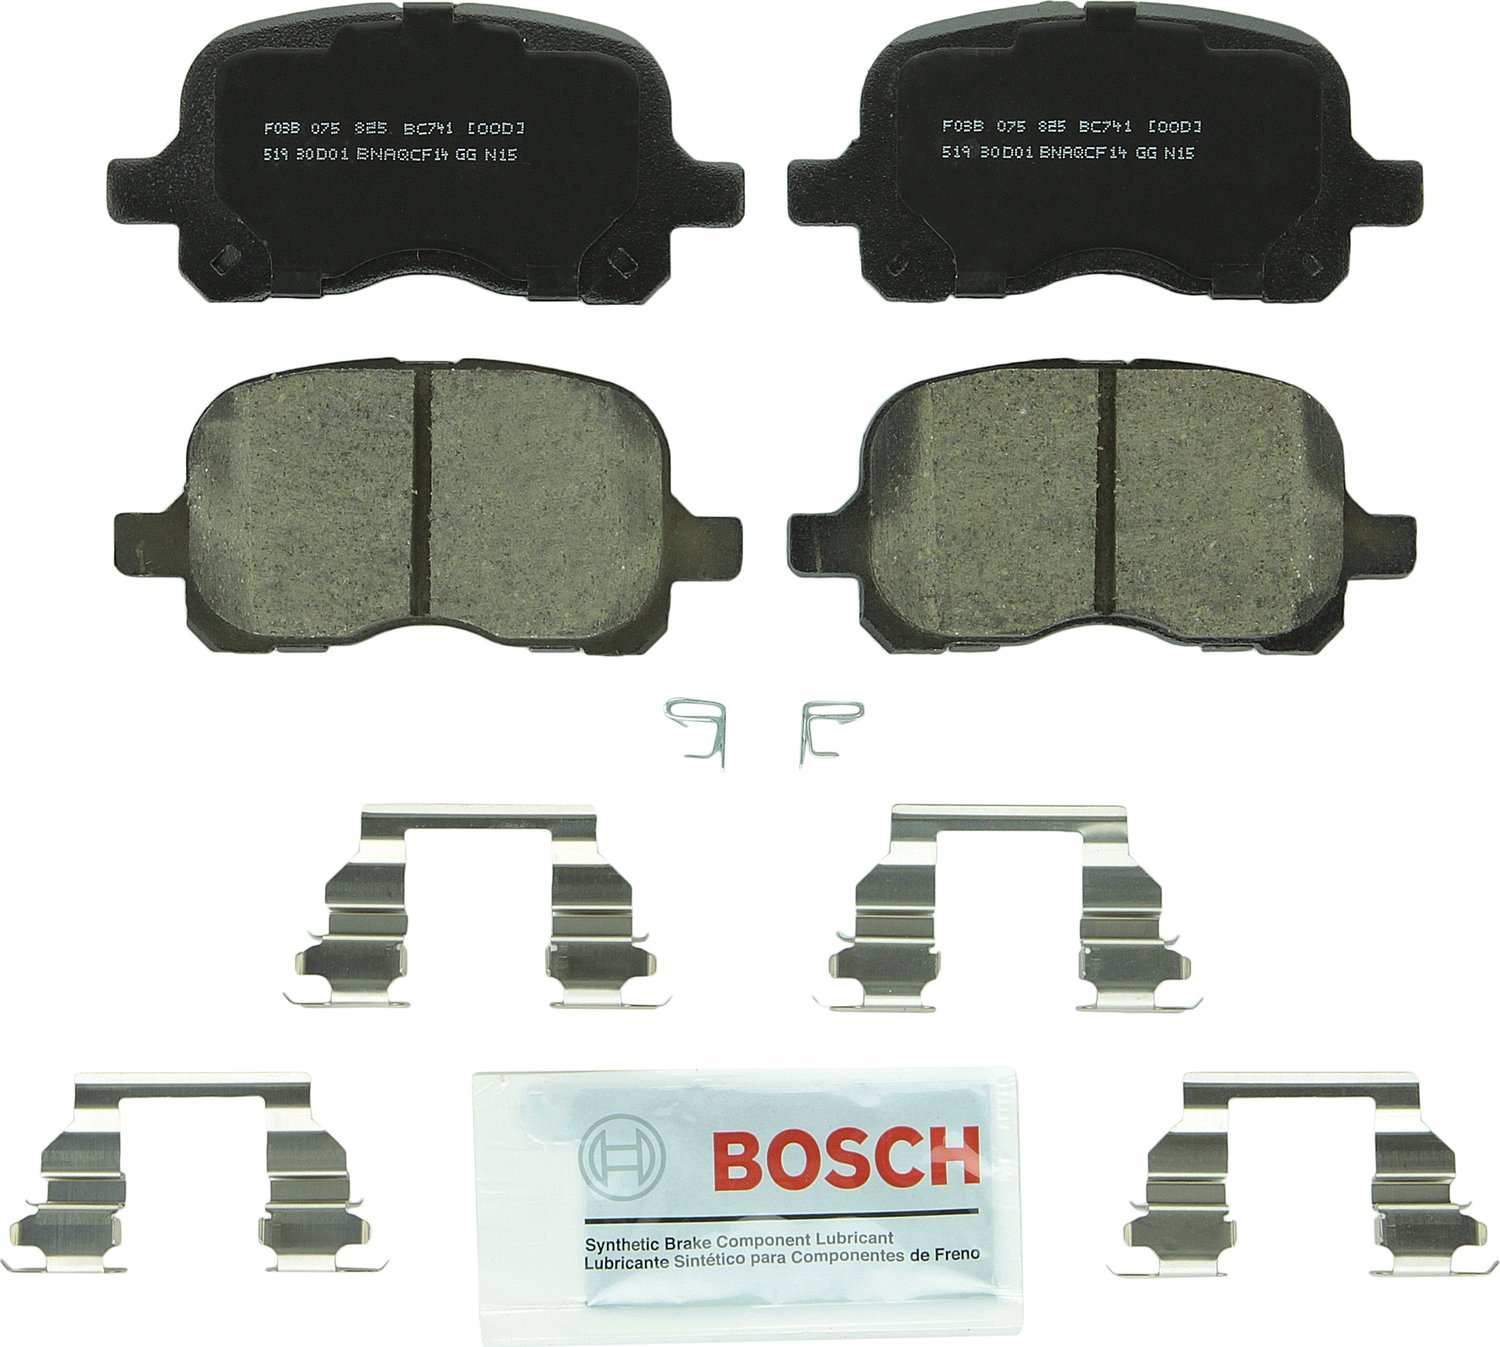 Bosch BC741 QuietCast Brake Pad Set